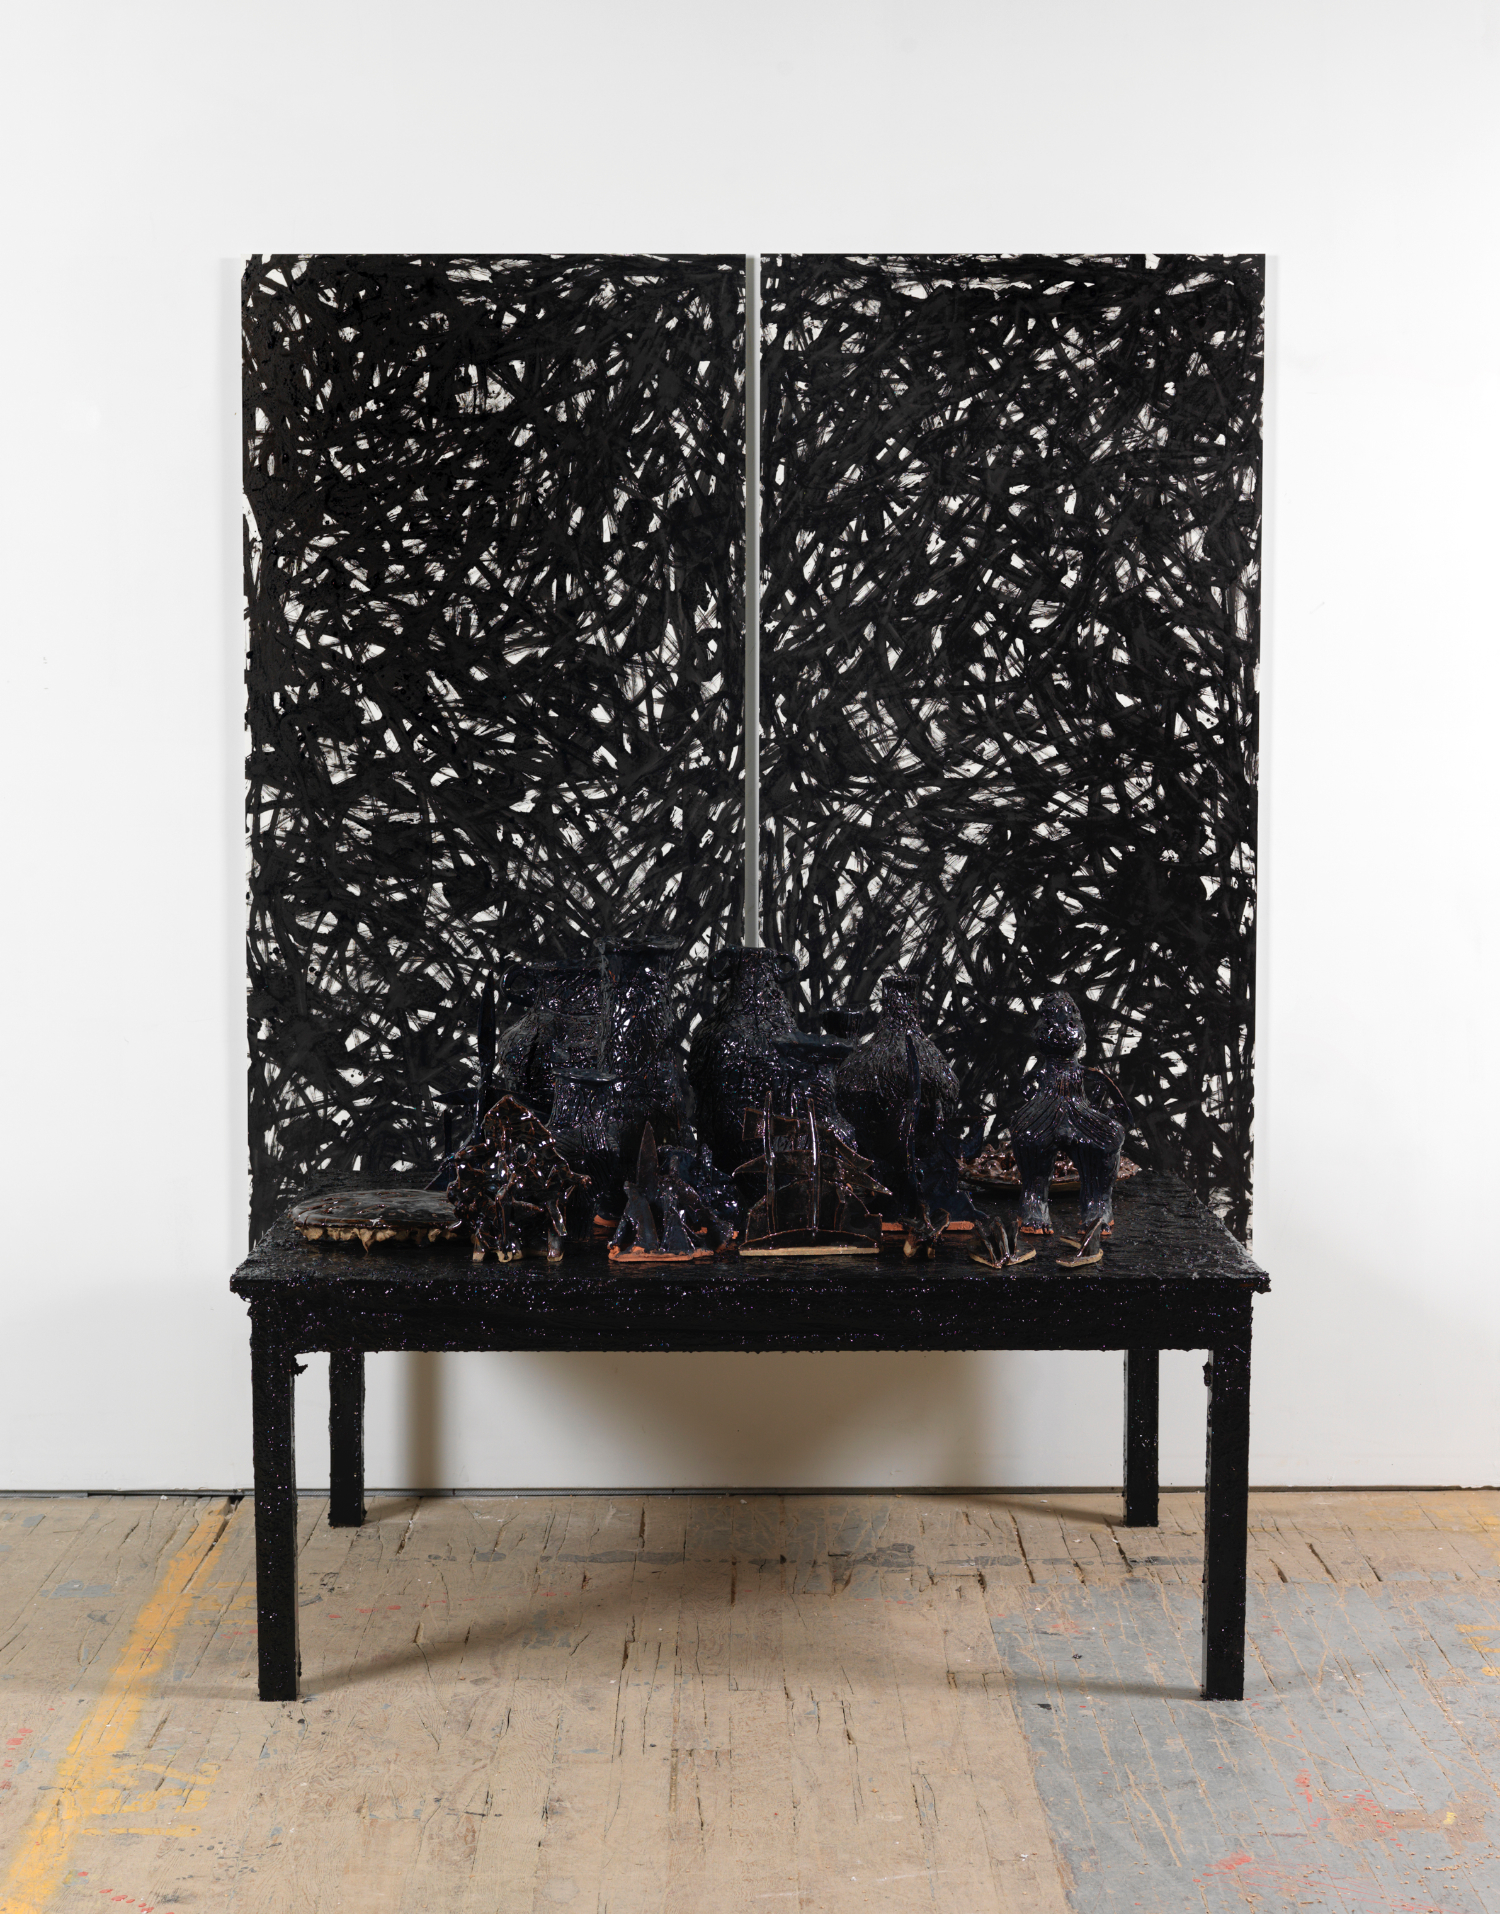 William J. O'Brien  Untitled  2008 Glazed ceramic, enamel, plaster, table, and ink on paper 88 ½h x 72 ½w x 55d in WOB416_2